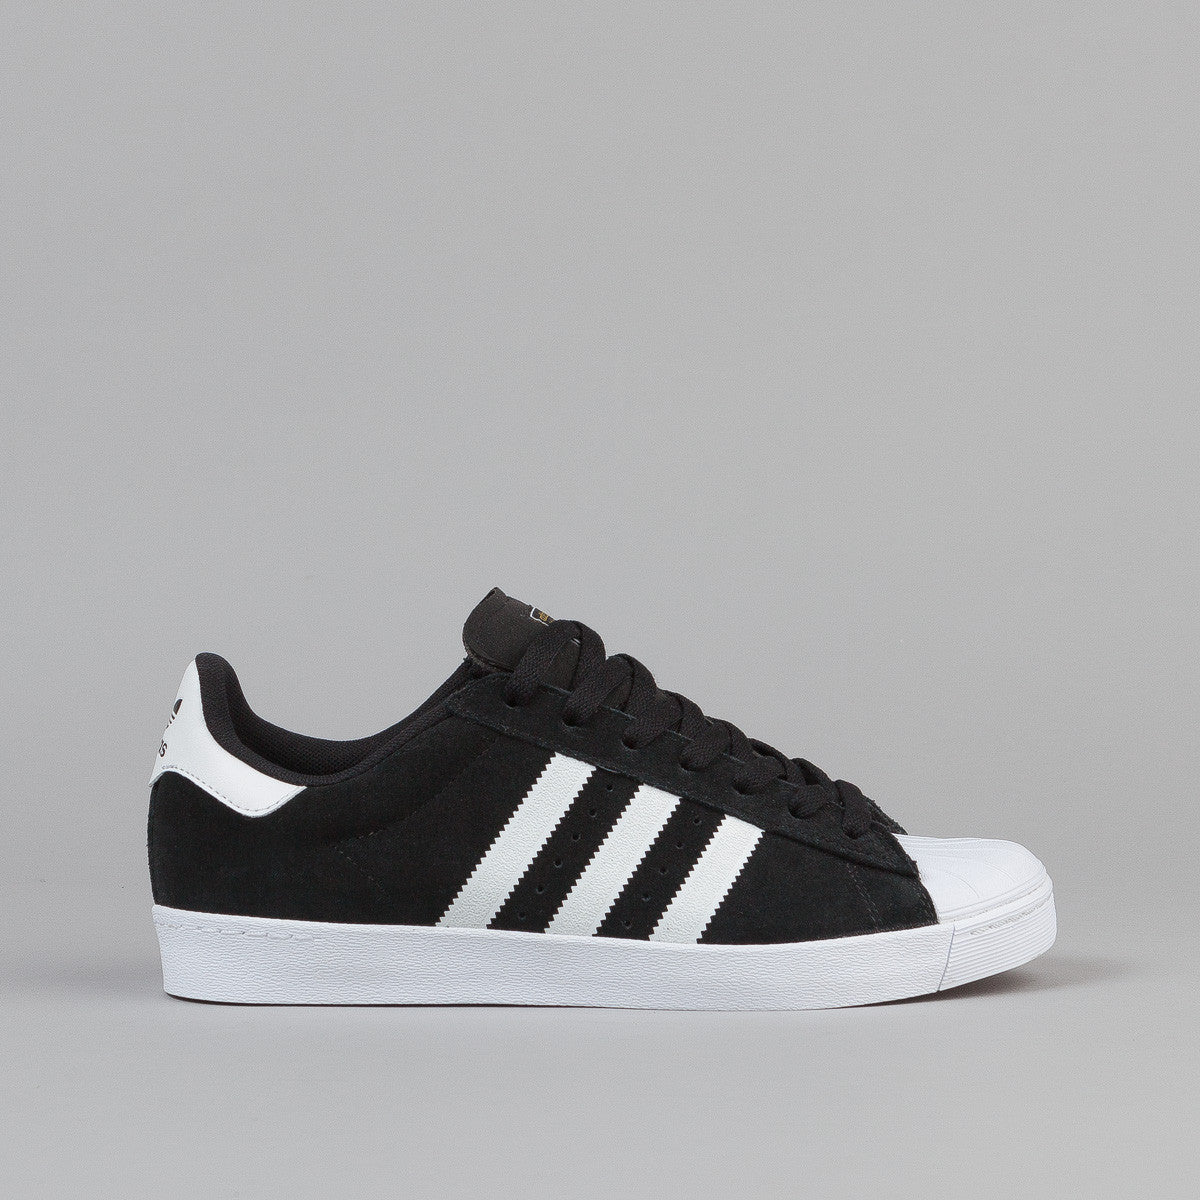 tkekx adidas superstar vulc adv white & black shoes ThanksGiving Day